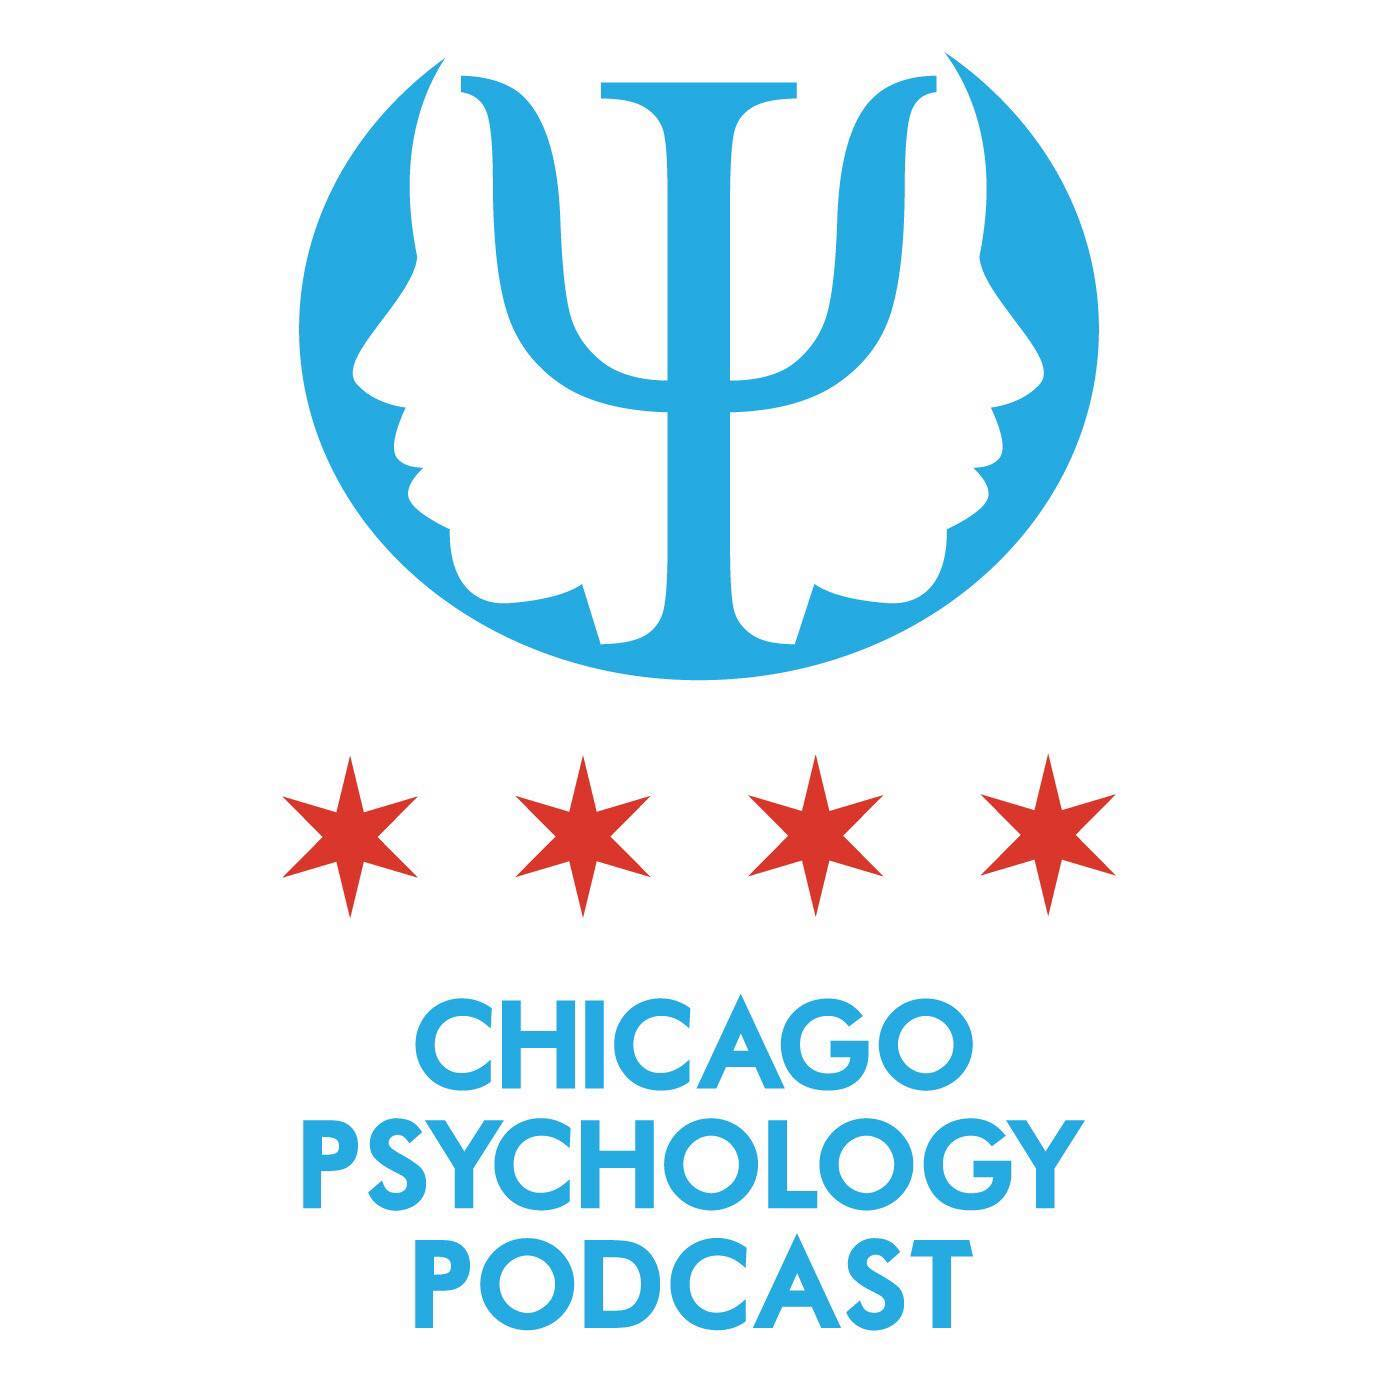 Chicago Psychology Podcast  show art